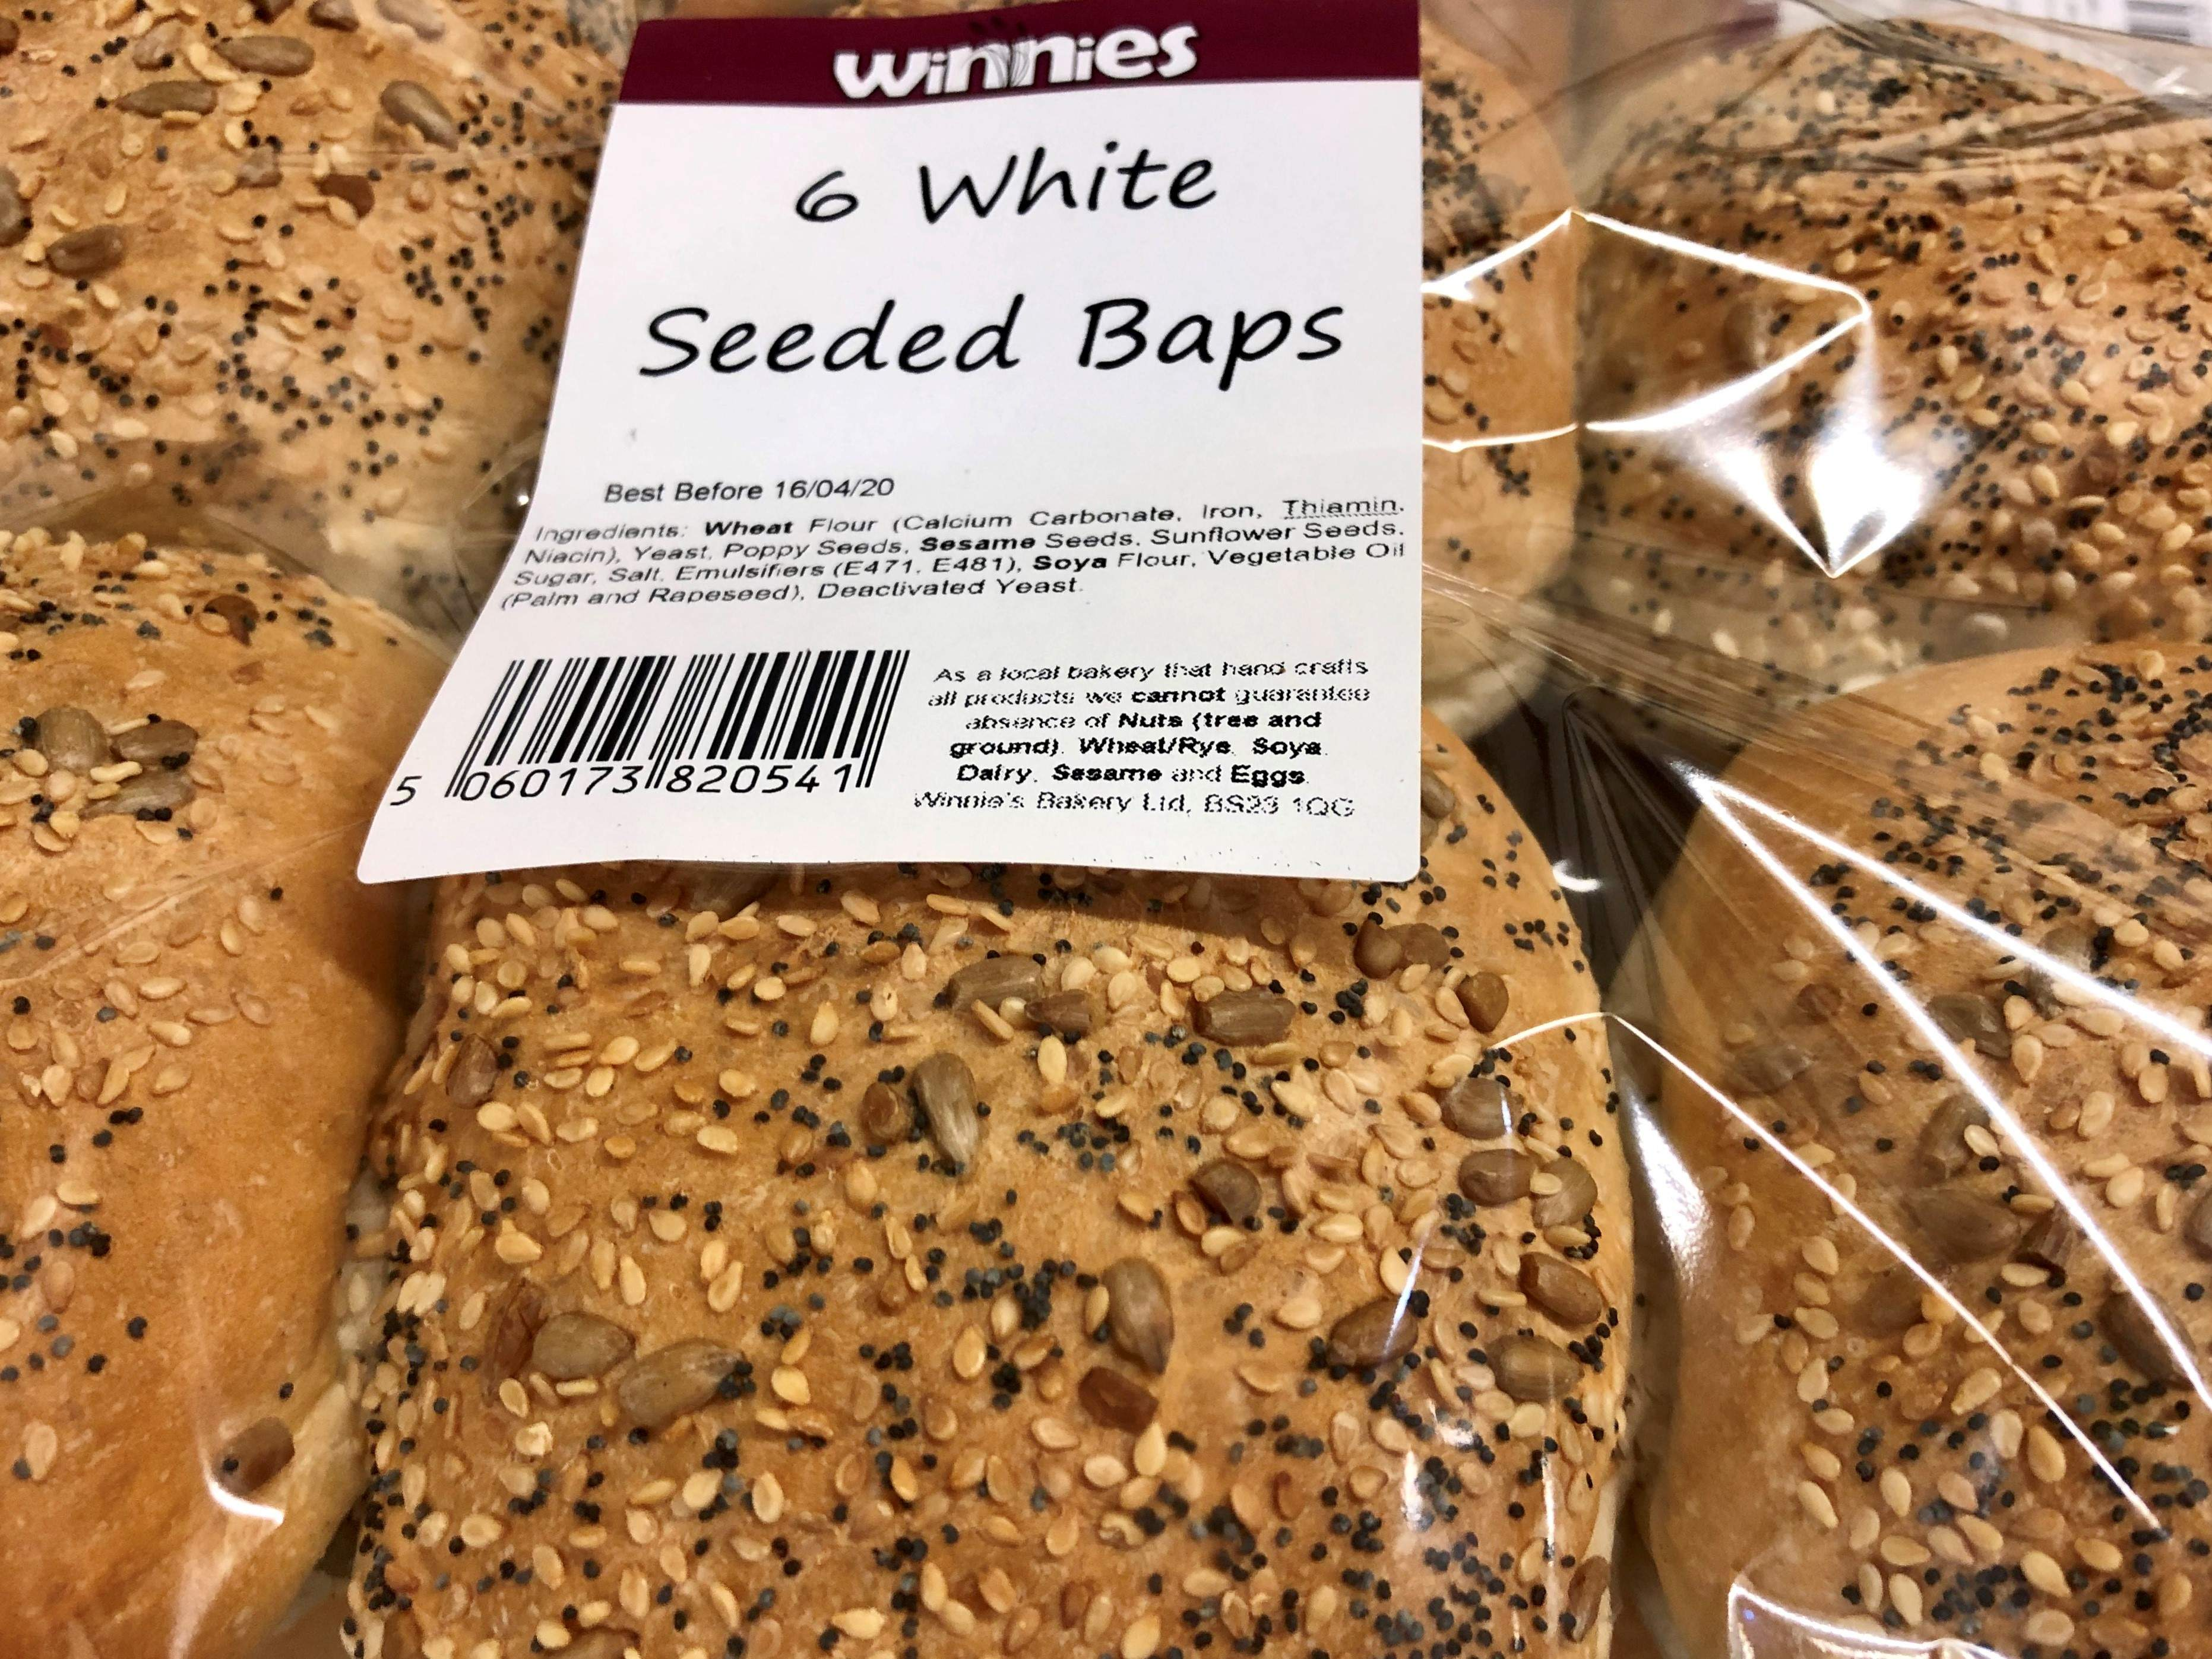 SIX SEEDED TOPPED WHITE BAPS